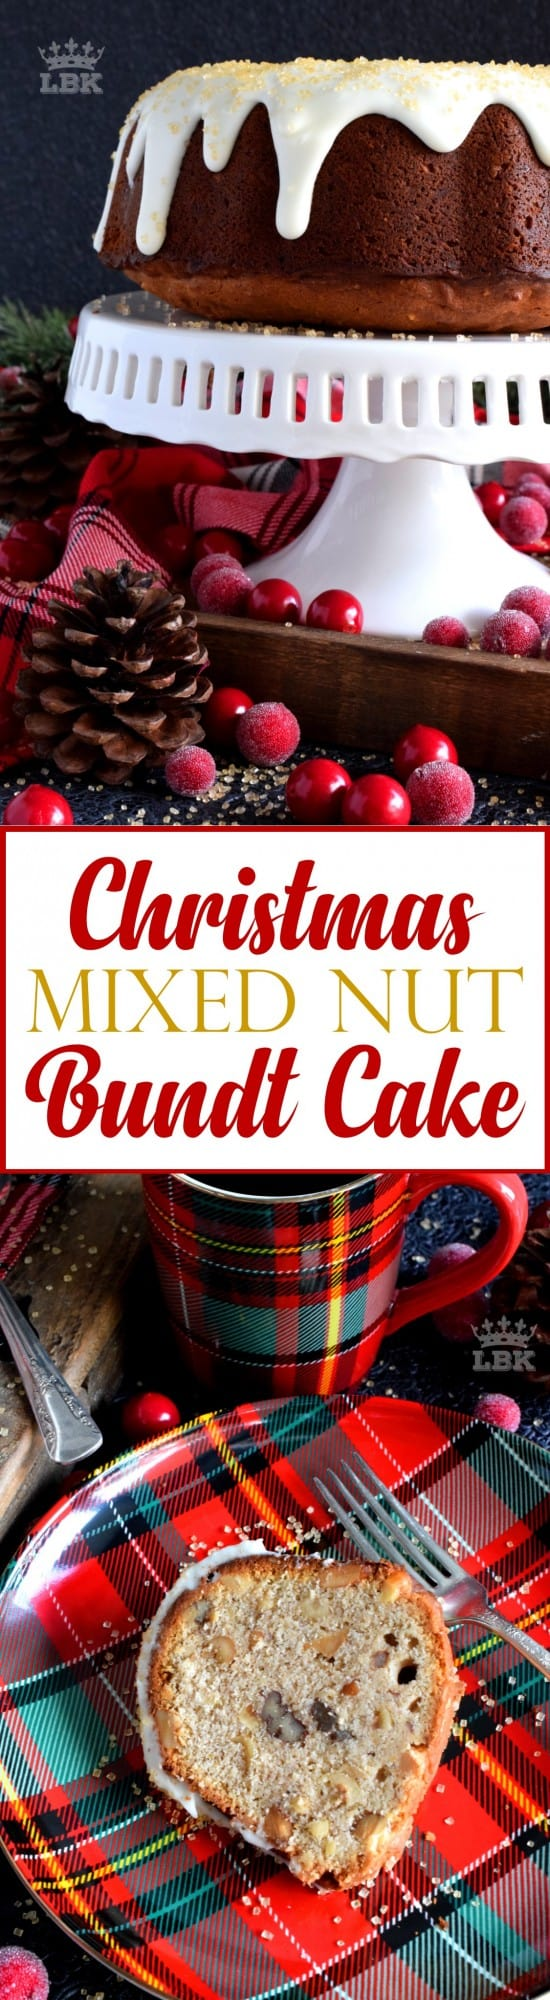 Christmas Mixed Nut Bundt Cake - Mixed nuts were always a popular snack item at Christmastime in our home, which is why this bundt cake is nostalgic and delicious! #mixed #nuts #bundt #cake #bundtbakers #christmas #holiday #baking